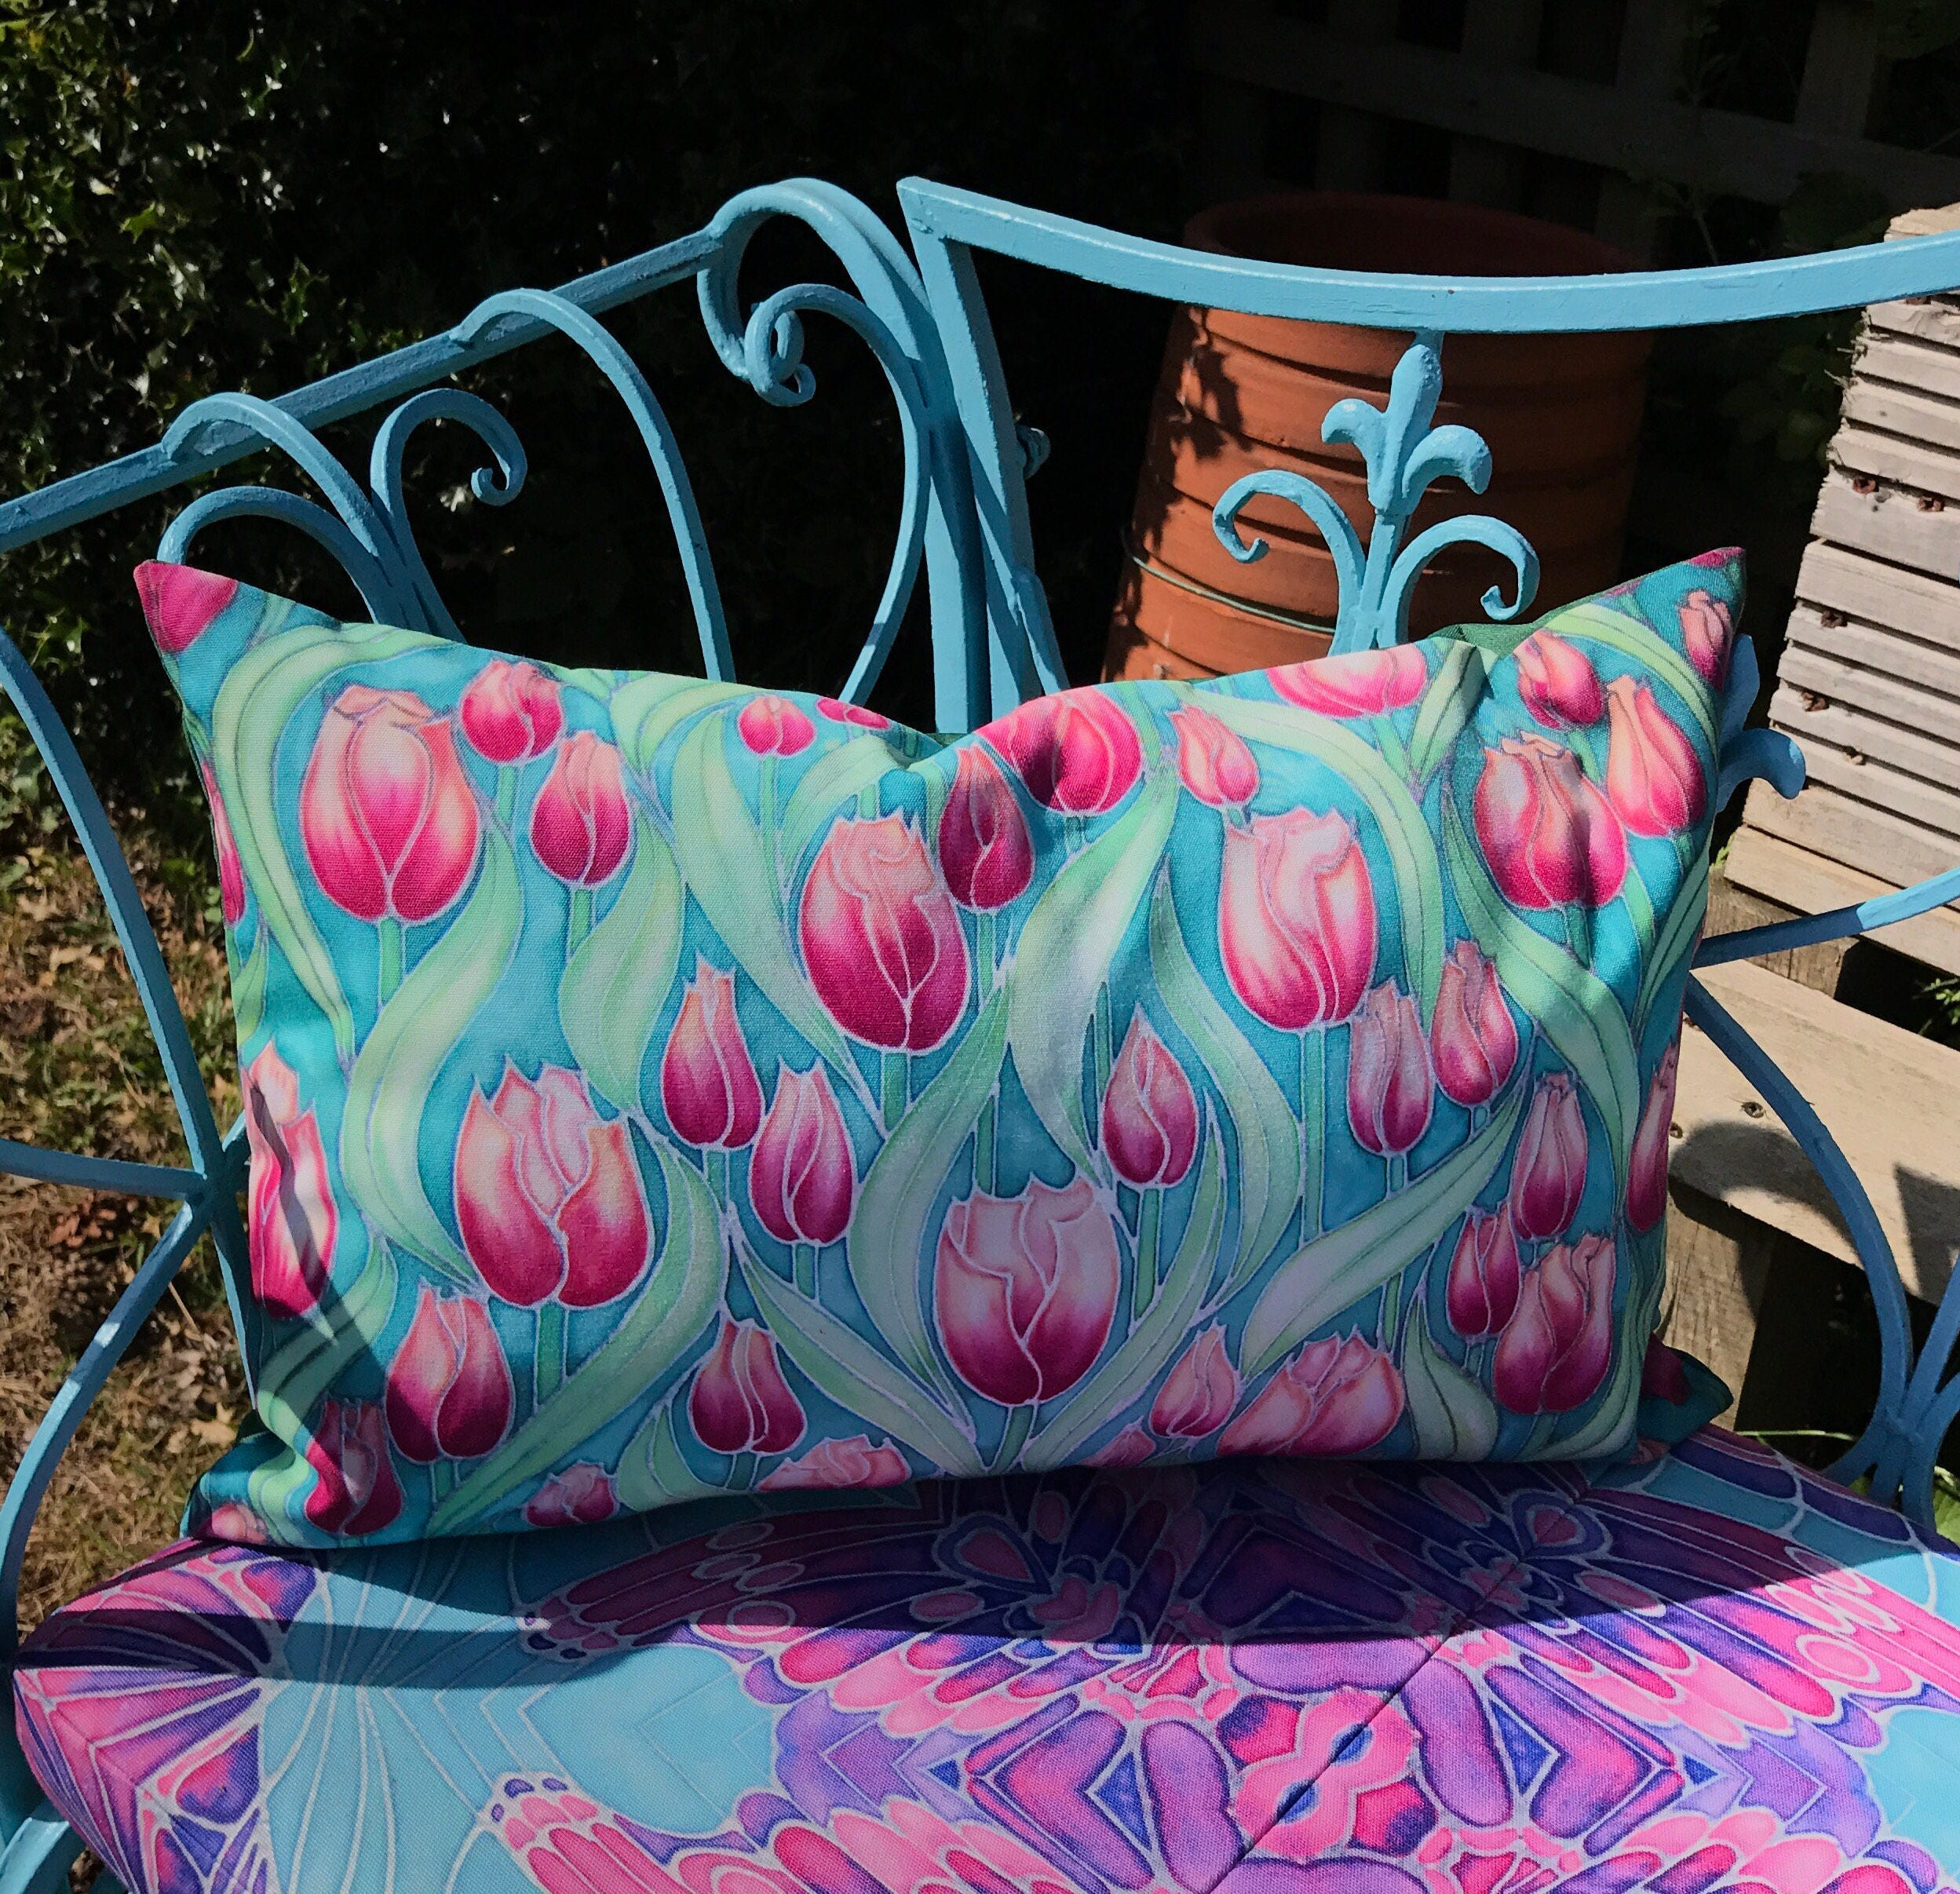 Pink Tulips Showerproof Pillow  Pink and Mint Green Tulips Exterior Pillow  Tulip Garden Seat Cushion in Candy Colours  Decorative